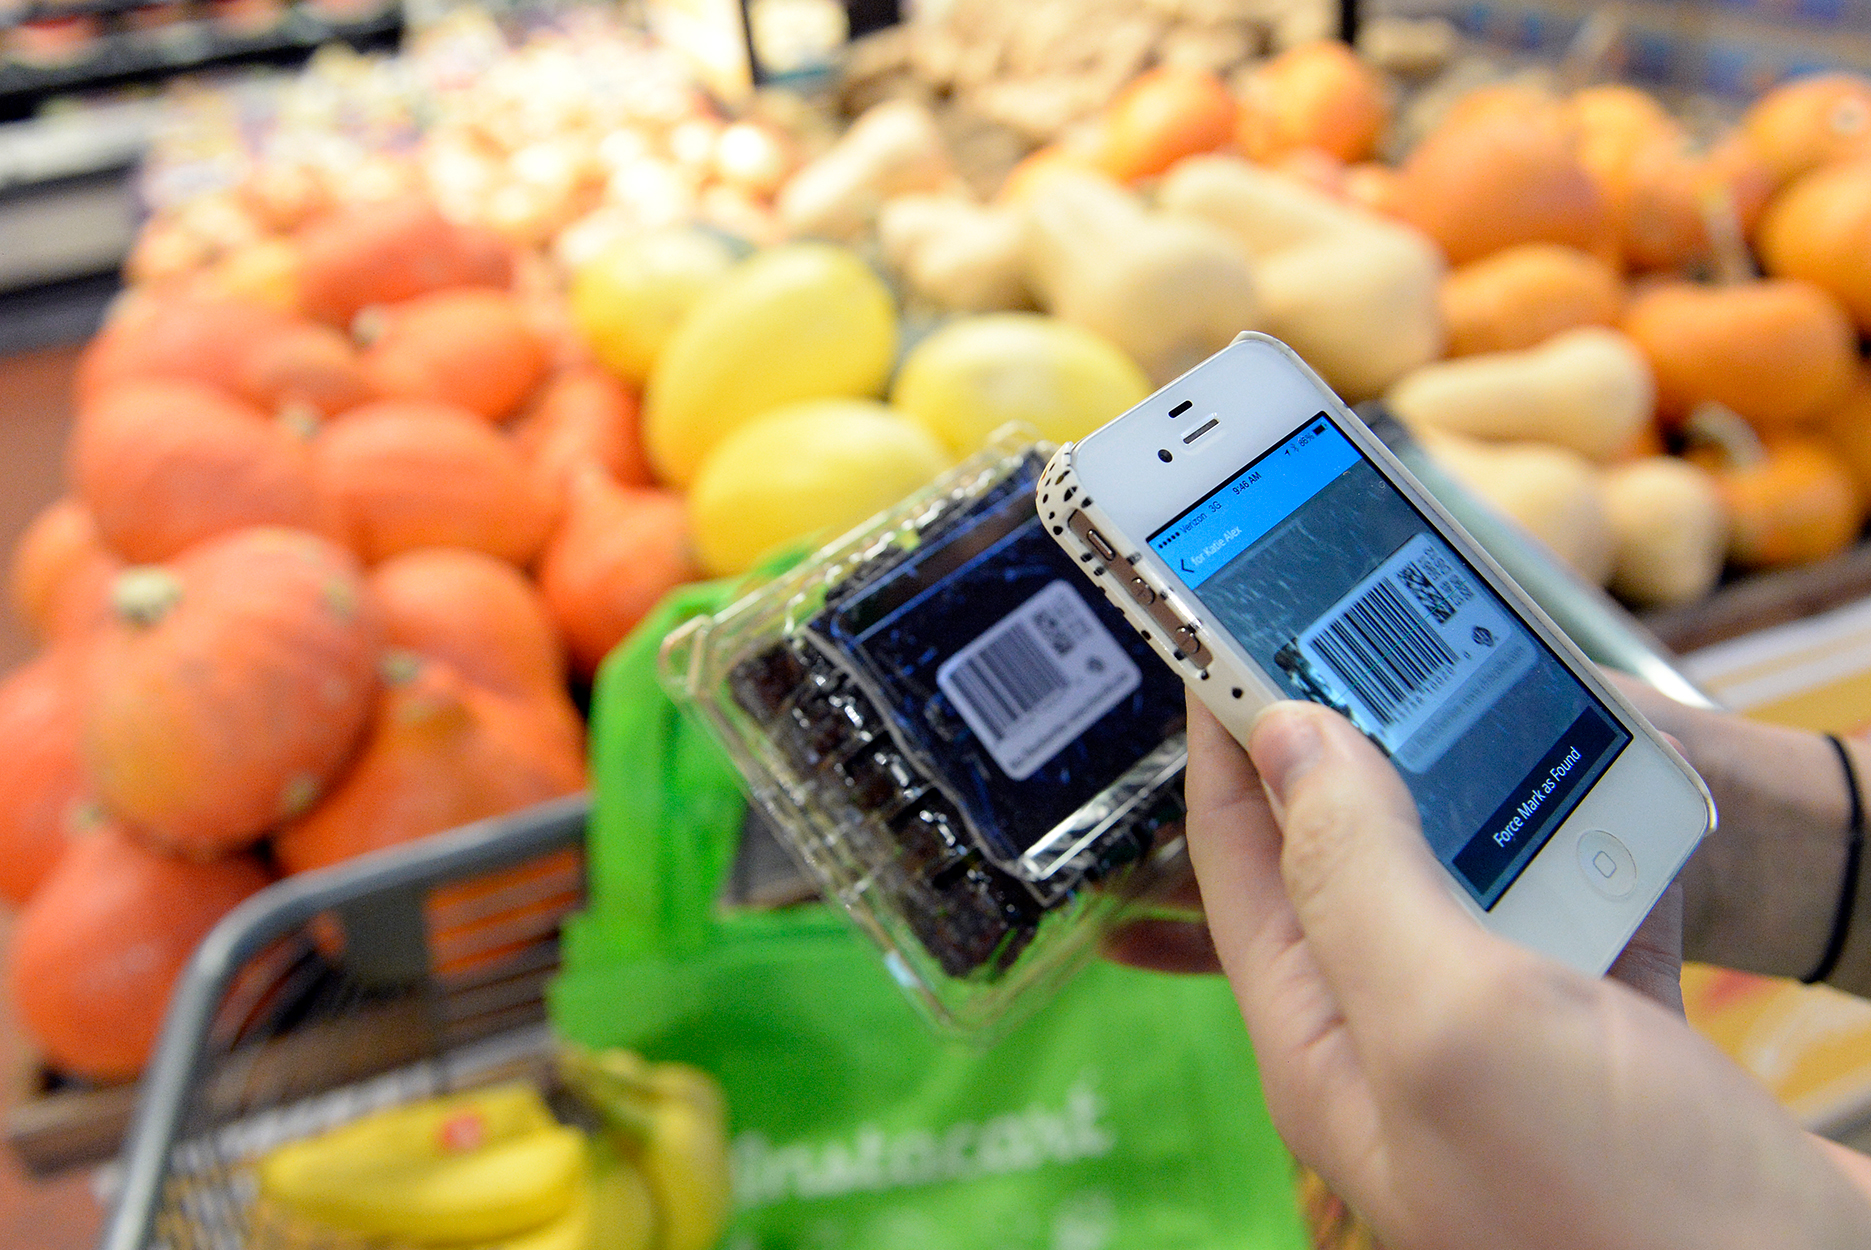 Kaitlin Myers a shopper for Instacart scans a bar code with her smart phone as she shops for a customer at Whole Foods in Denver.